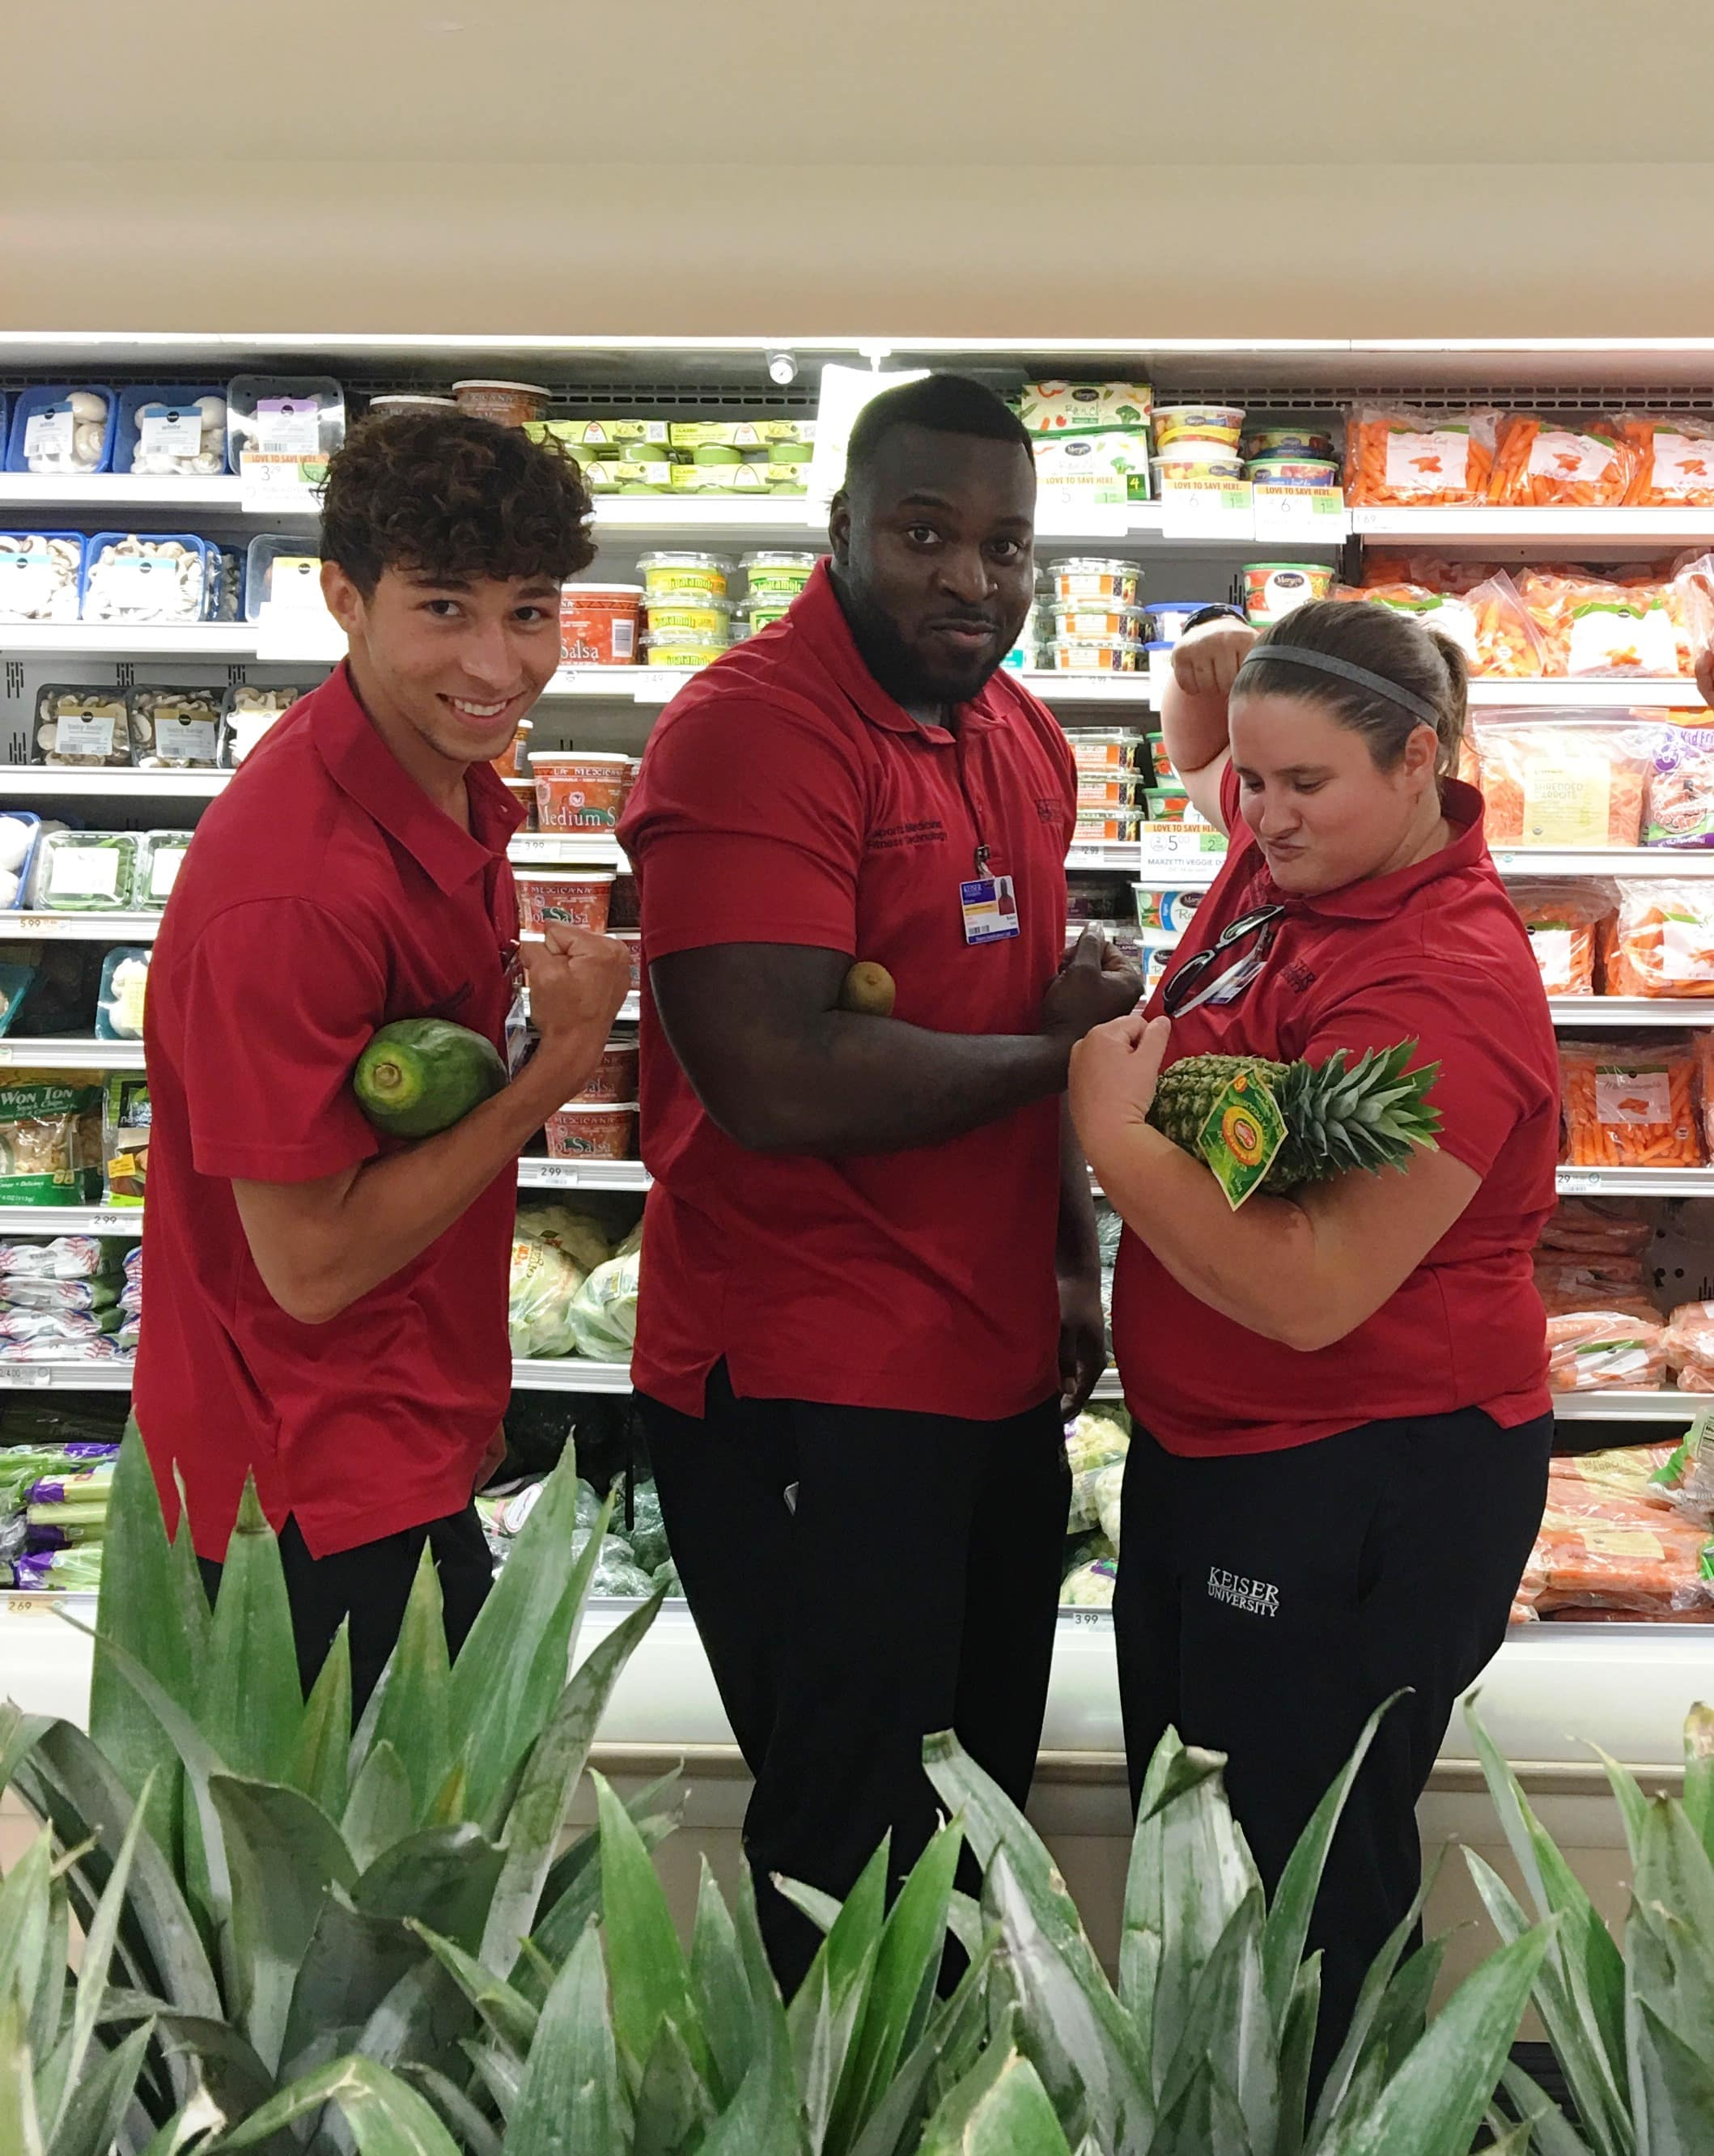 Melbourne Students Visit Local Supermarket To Learn About